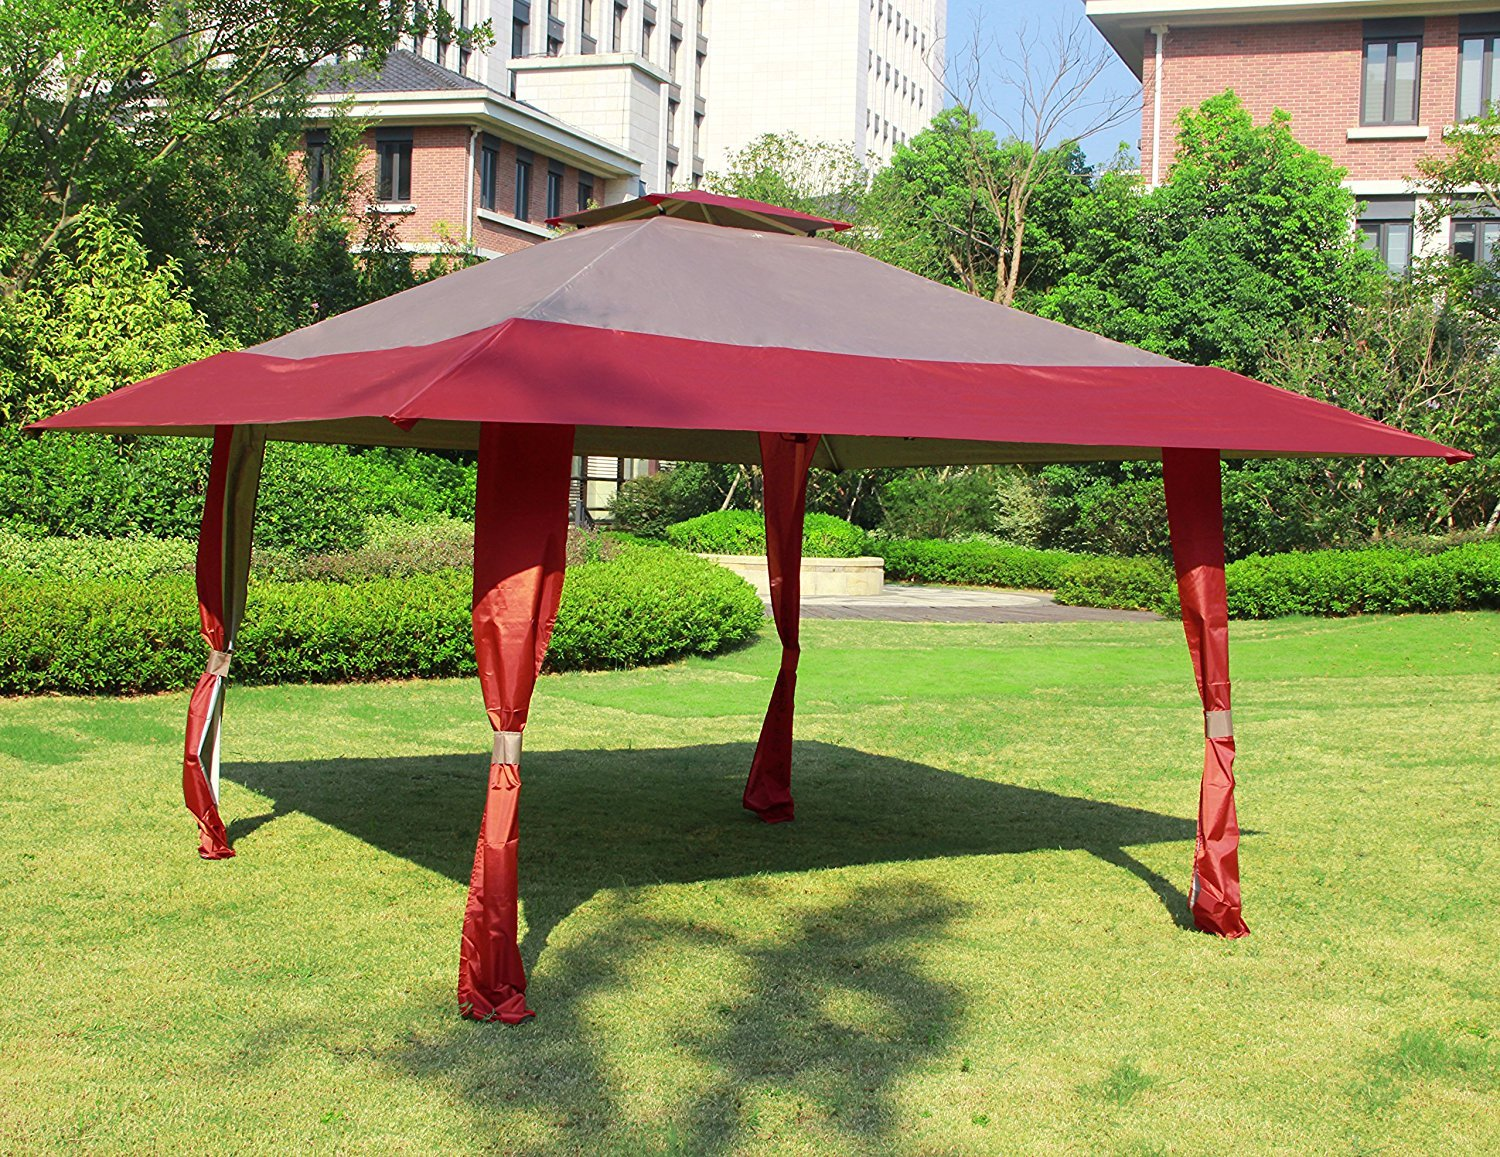 Cloud Mountain 13' x 13' Outdoor Patio Easy Pop-Up Double Roof Gazebo Canopy Tent, Water Resistance Resist Light Rain UV Protected Vented Gazobo for Party Event, Burgundy Tan by Cloud Mountain